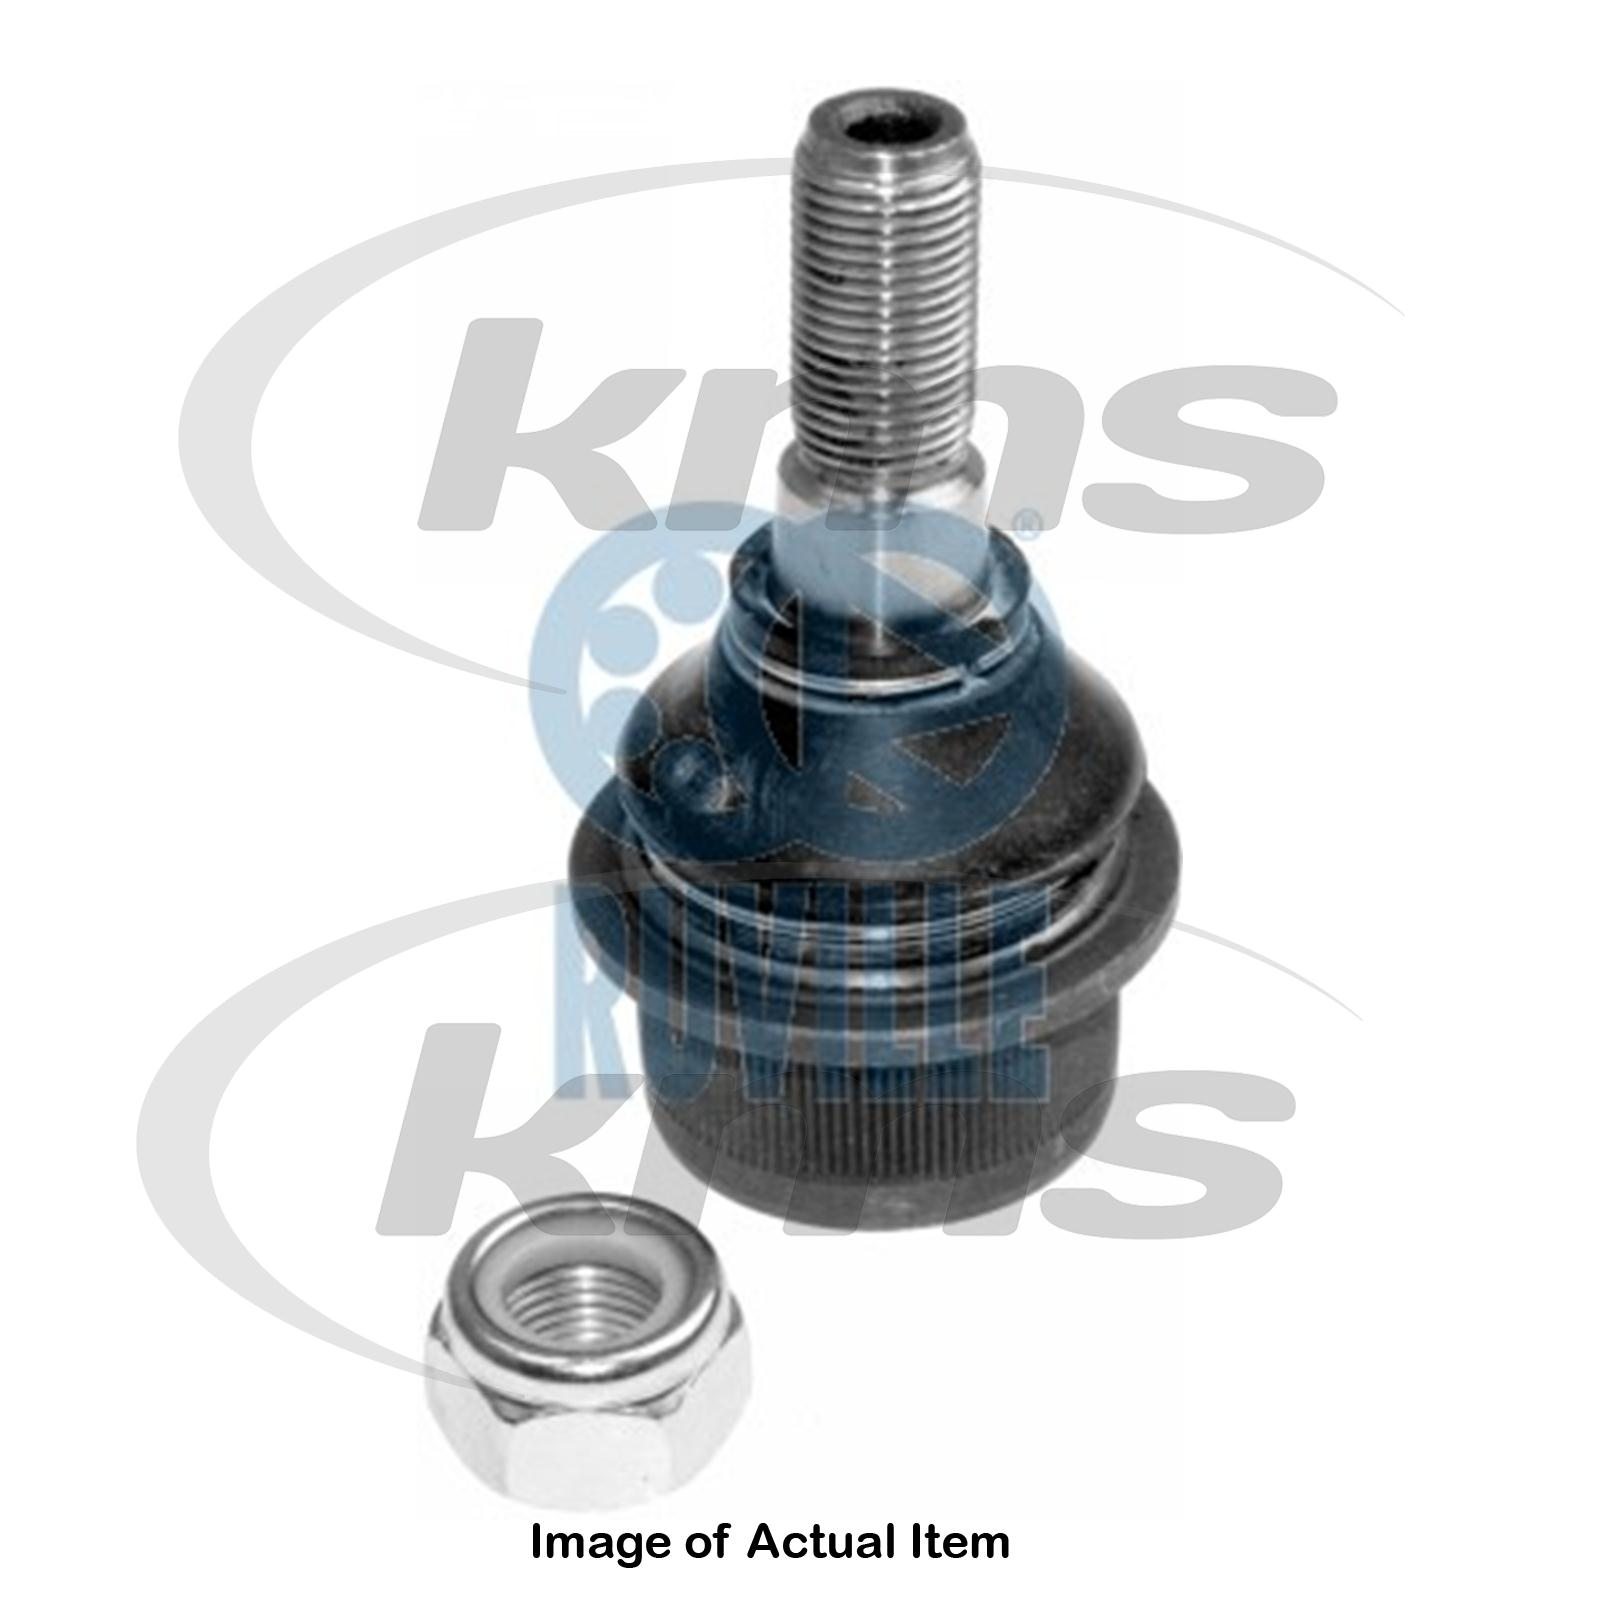 New Genuine RUVILLE Suspension Ball Joint Mounting Kit 855703 Top German Quality